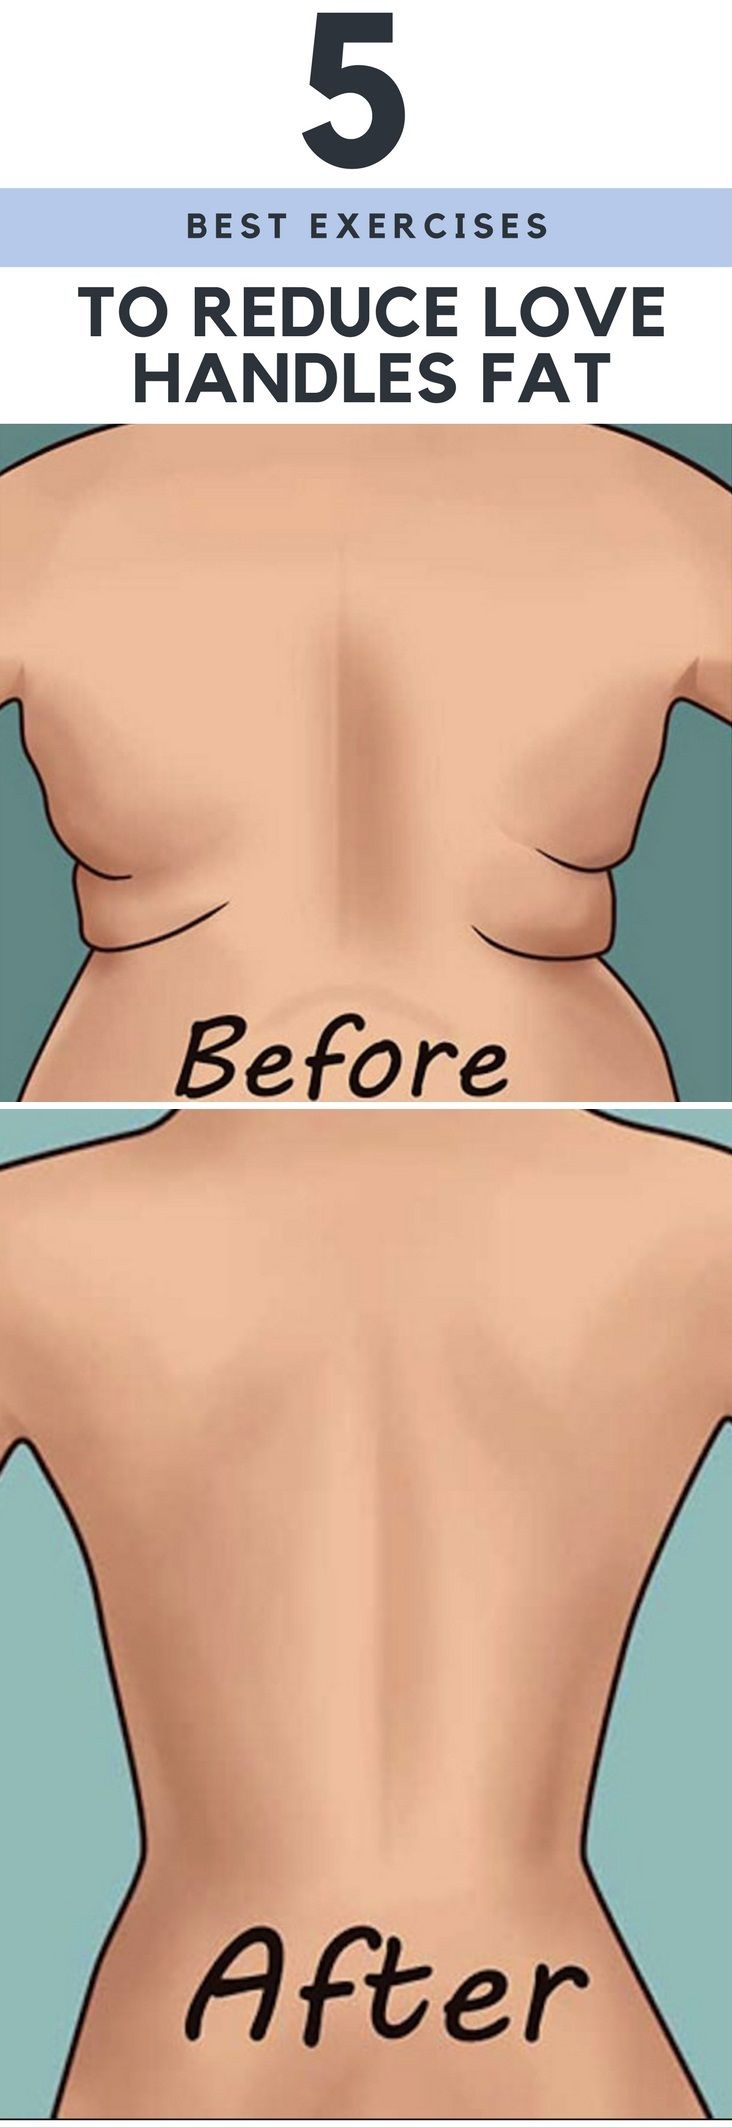 5 Best Exercises To Reduce Love Handles Fat #Health #Wellness #Fitness #Tips #Food #Motivation #Remedies #Natural #Mental #Holistic #Skin #Woman's #Facts #Care #Lifestyle #Detox #Beauty #Diet #Body #Nutricion #Skincare #NaturalTreatments #HealthyLifestyle